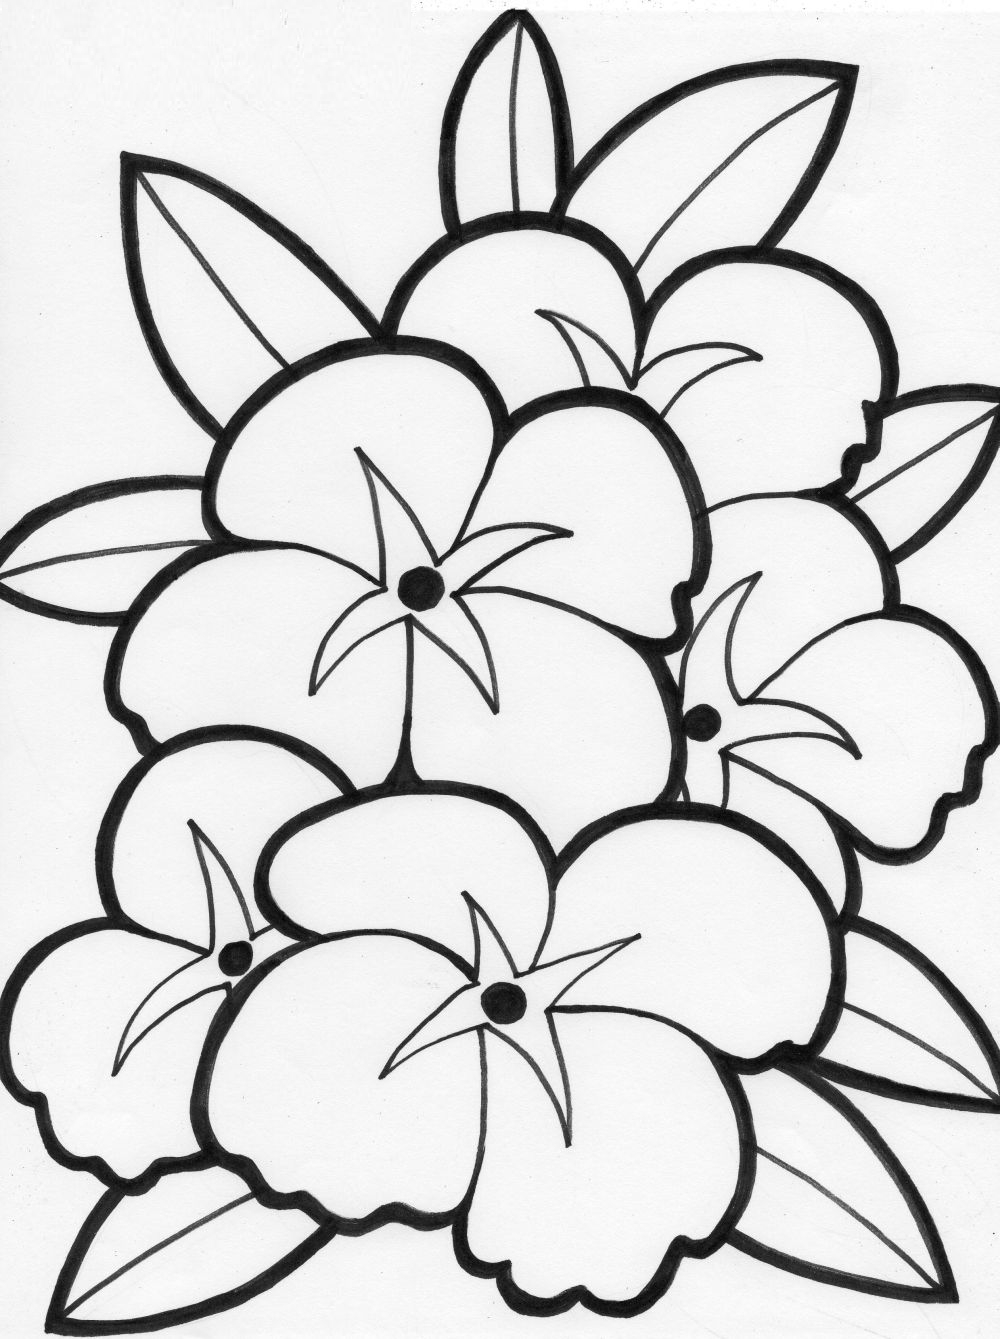 Free Coloring Pages | Free Flower Coloring Pages | Coloring Pages - Free Printable Flower Coloring Pages